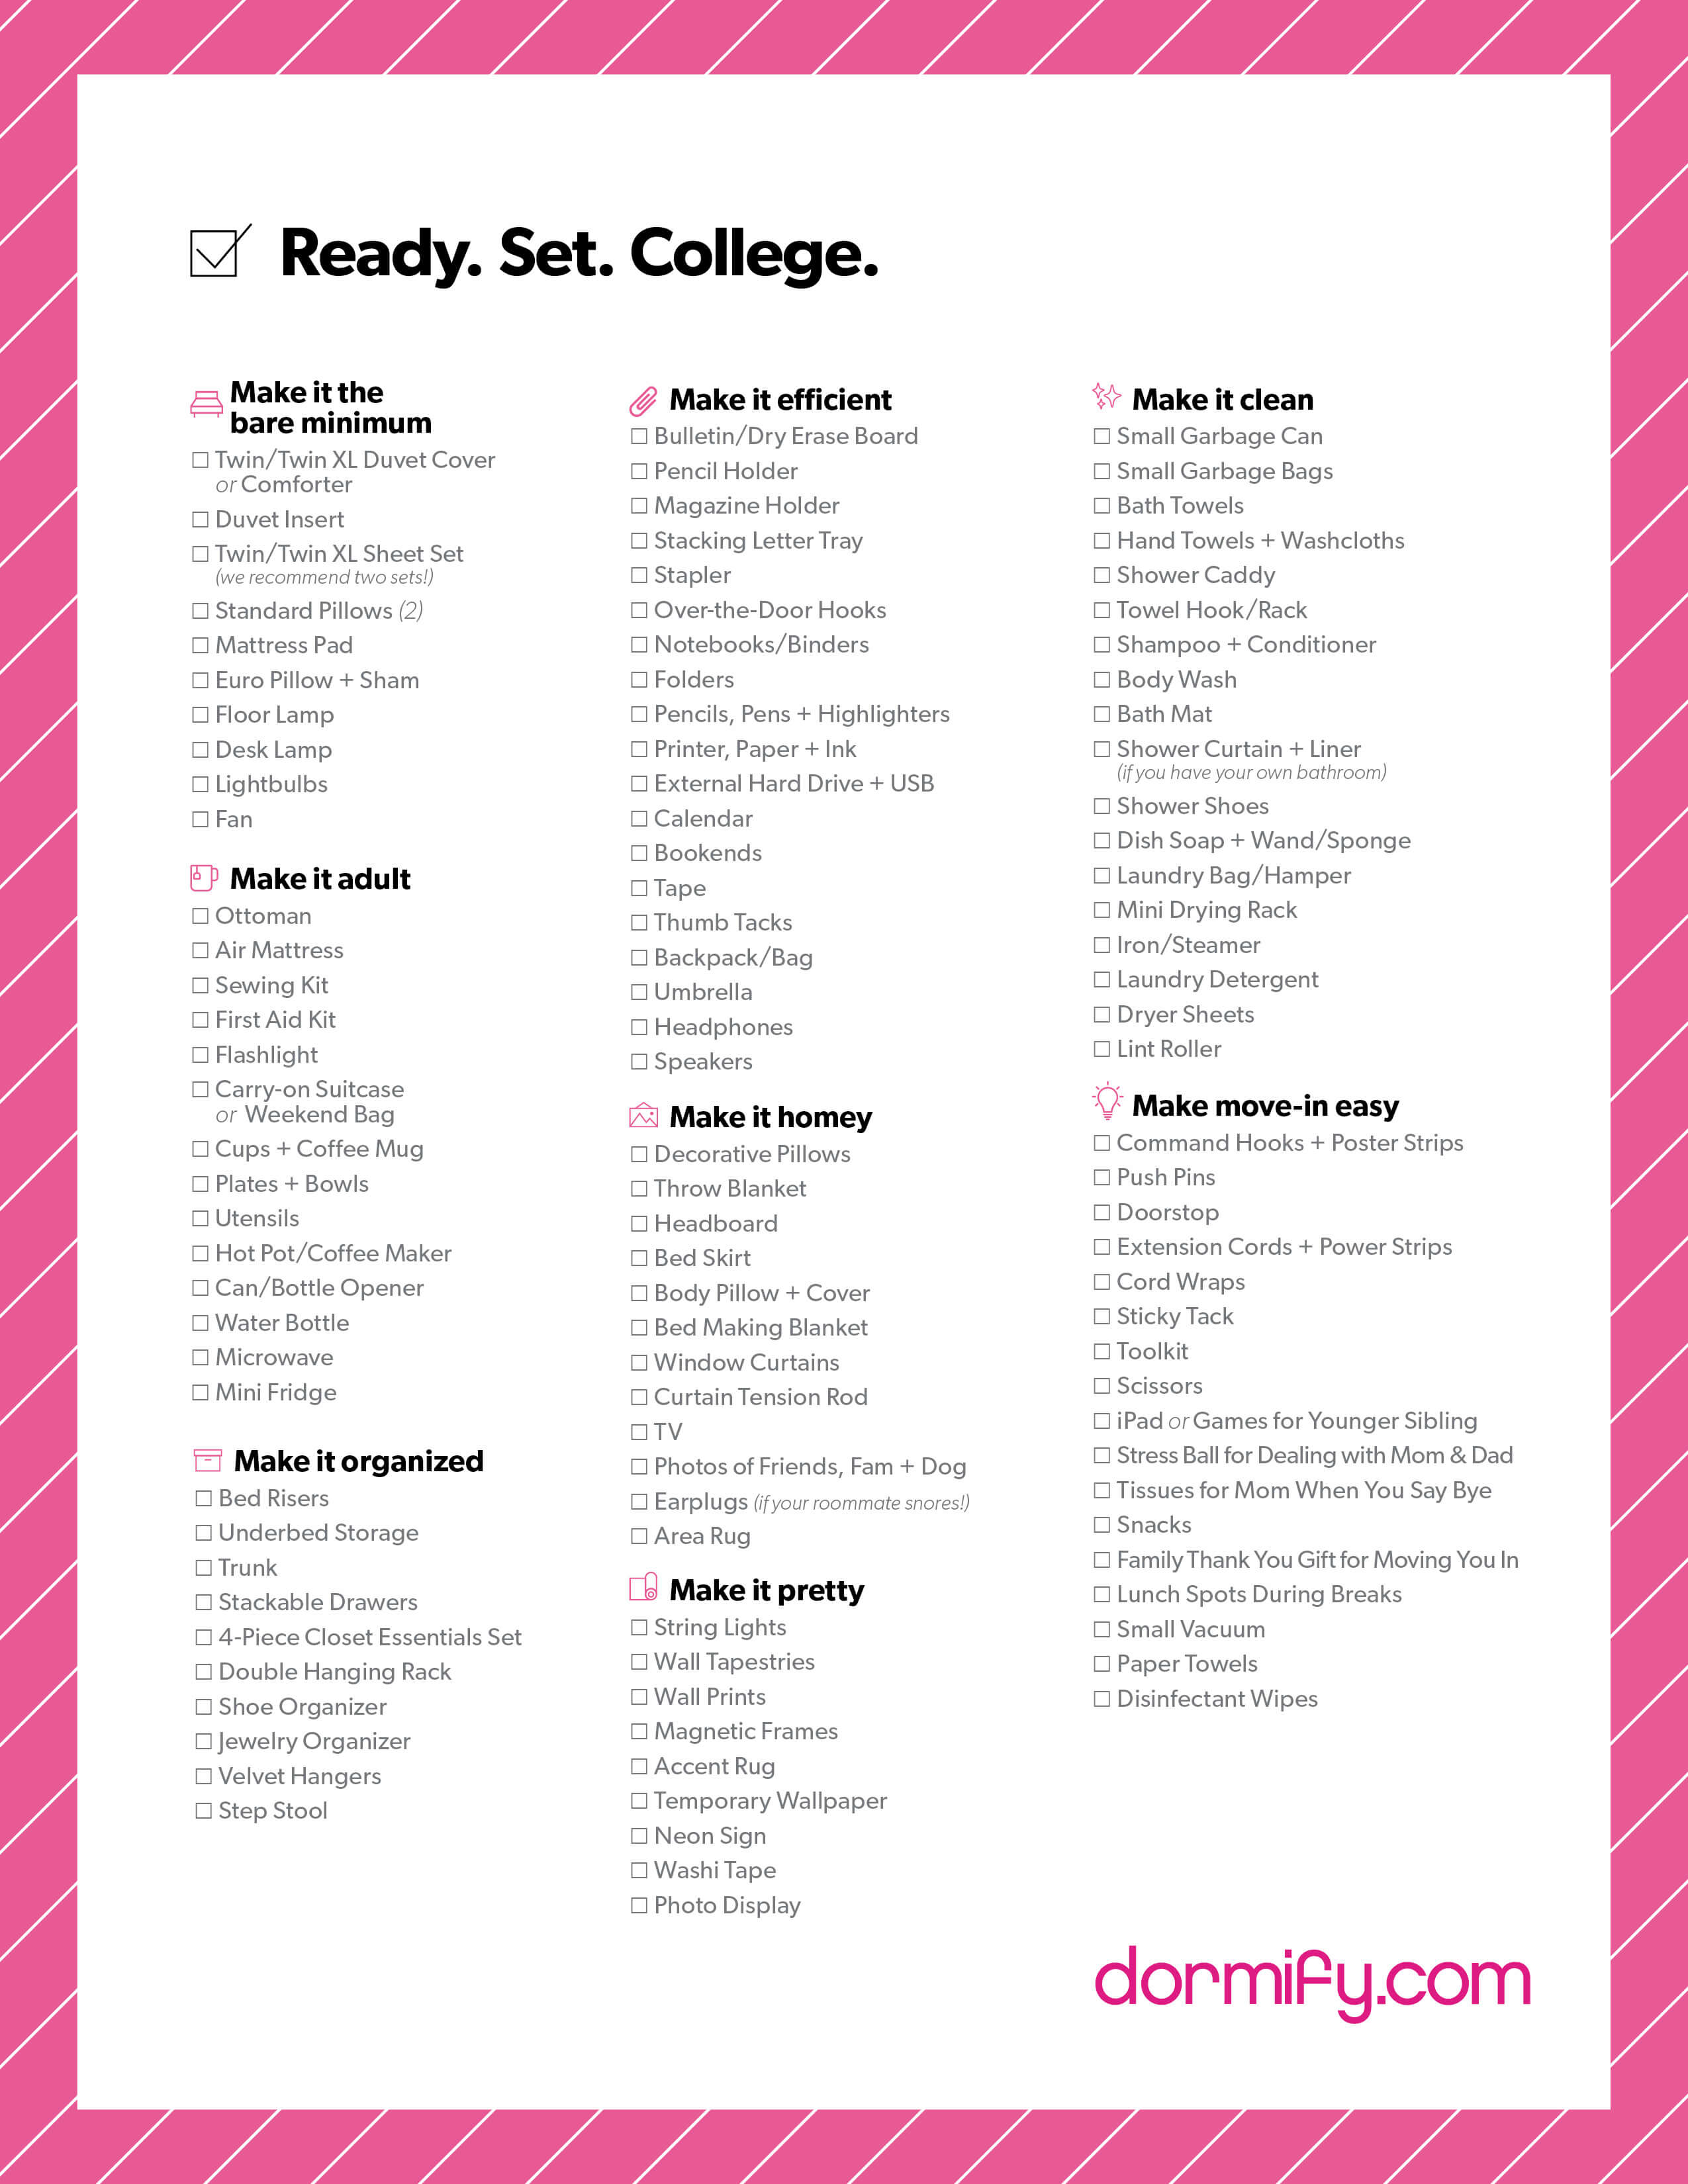 College Dorm Apartment Checklist Dormify